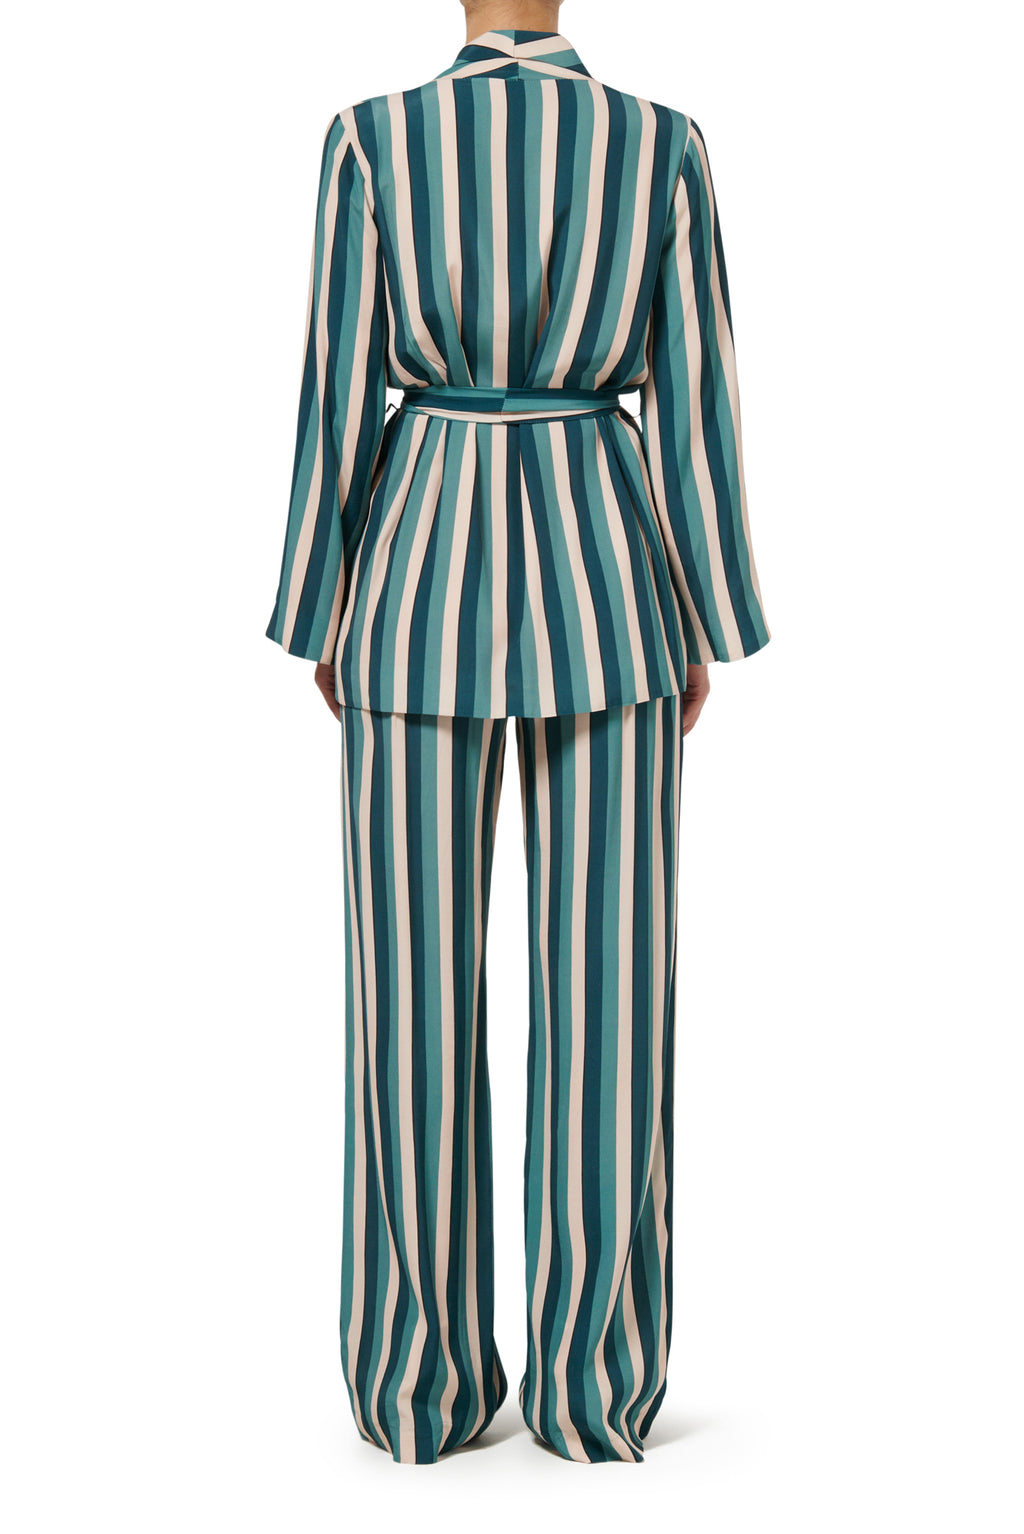 Calypso Lounge Jacket - Teal Stripe - PRE ORDER